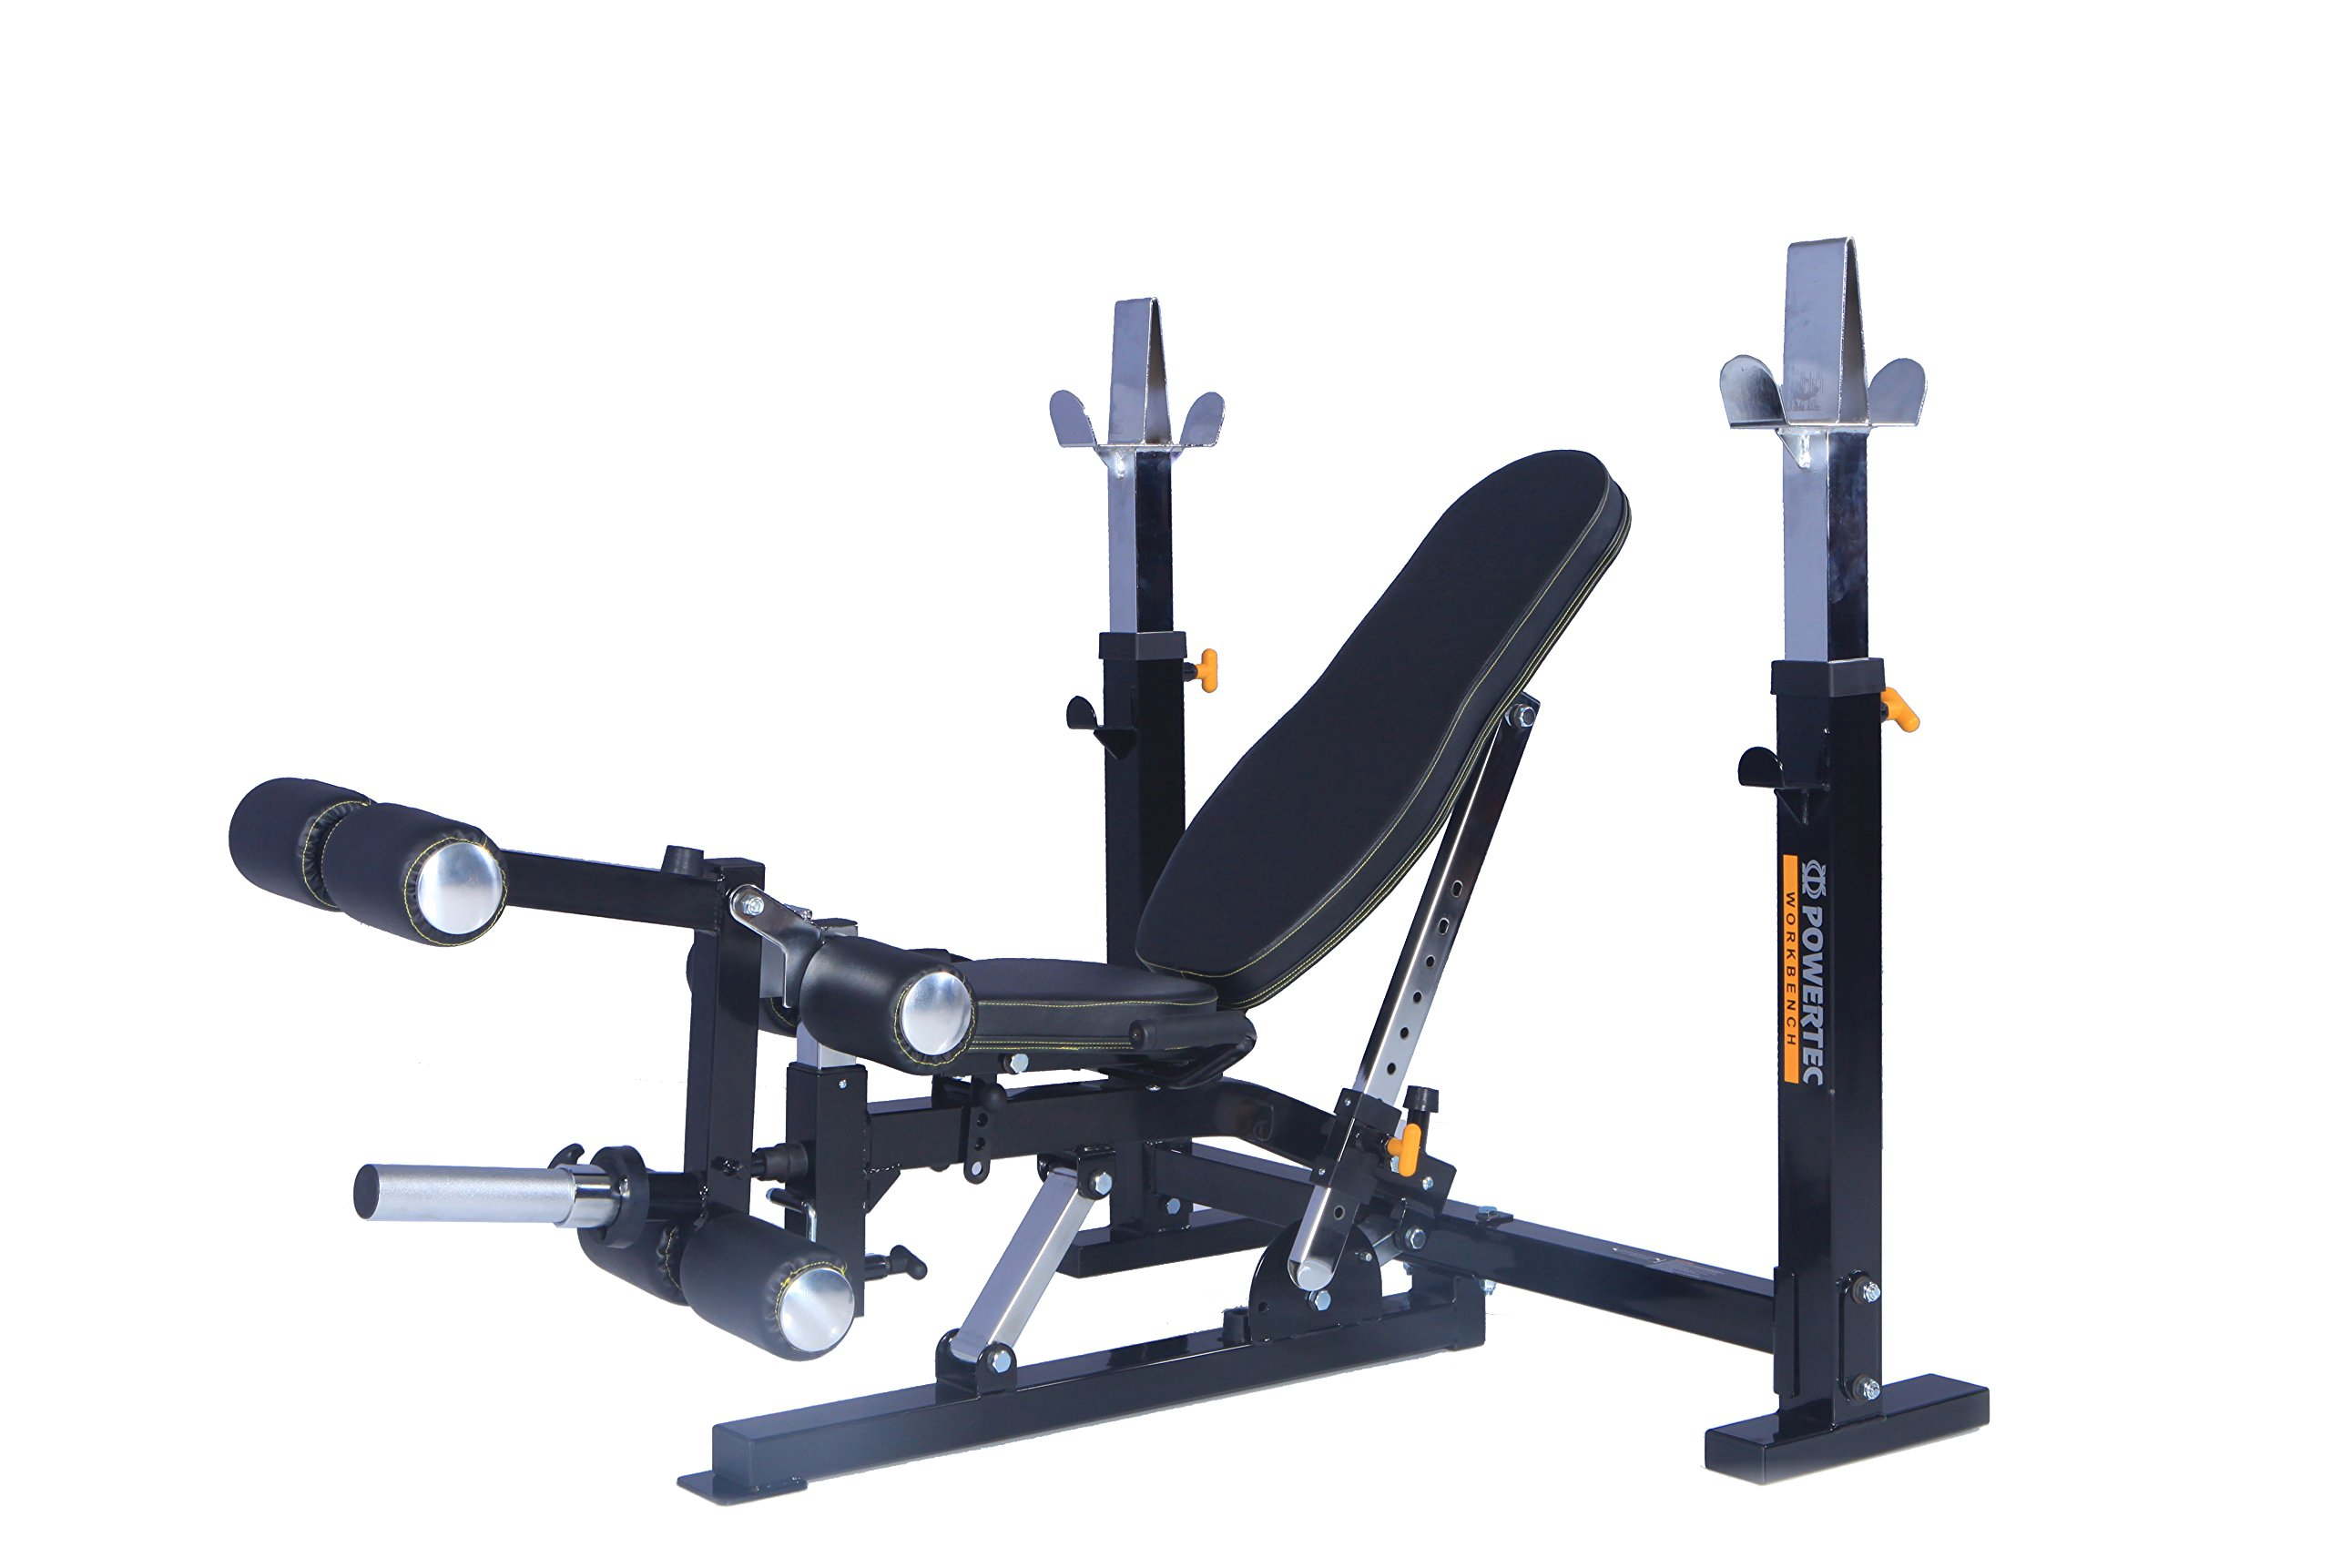 Powertec Fitness Workbench Olympic Bench with Leg Lift Accessory Black